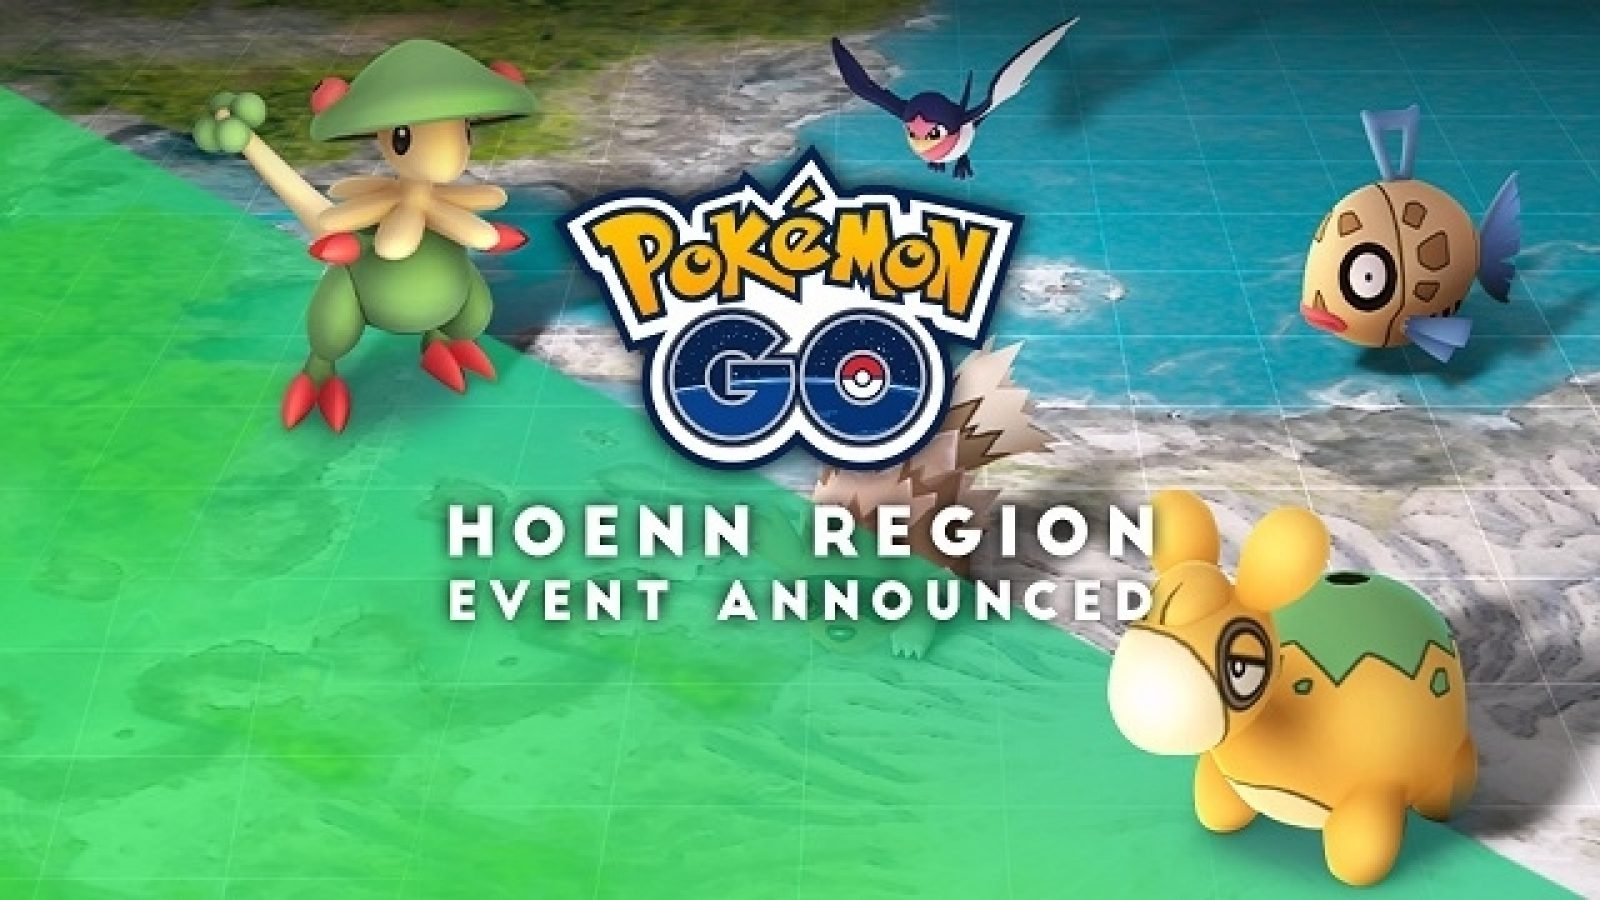 Pokemon Go Hoenn Event starts today